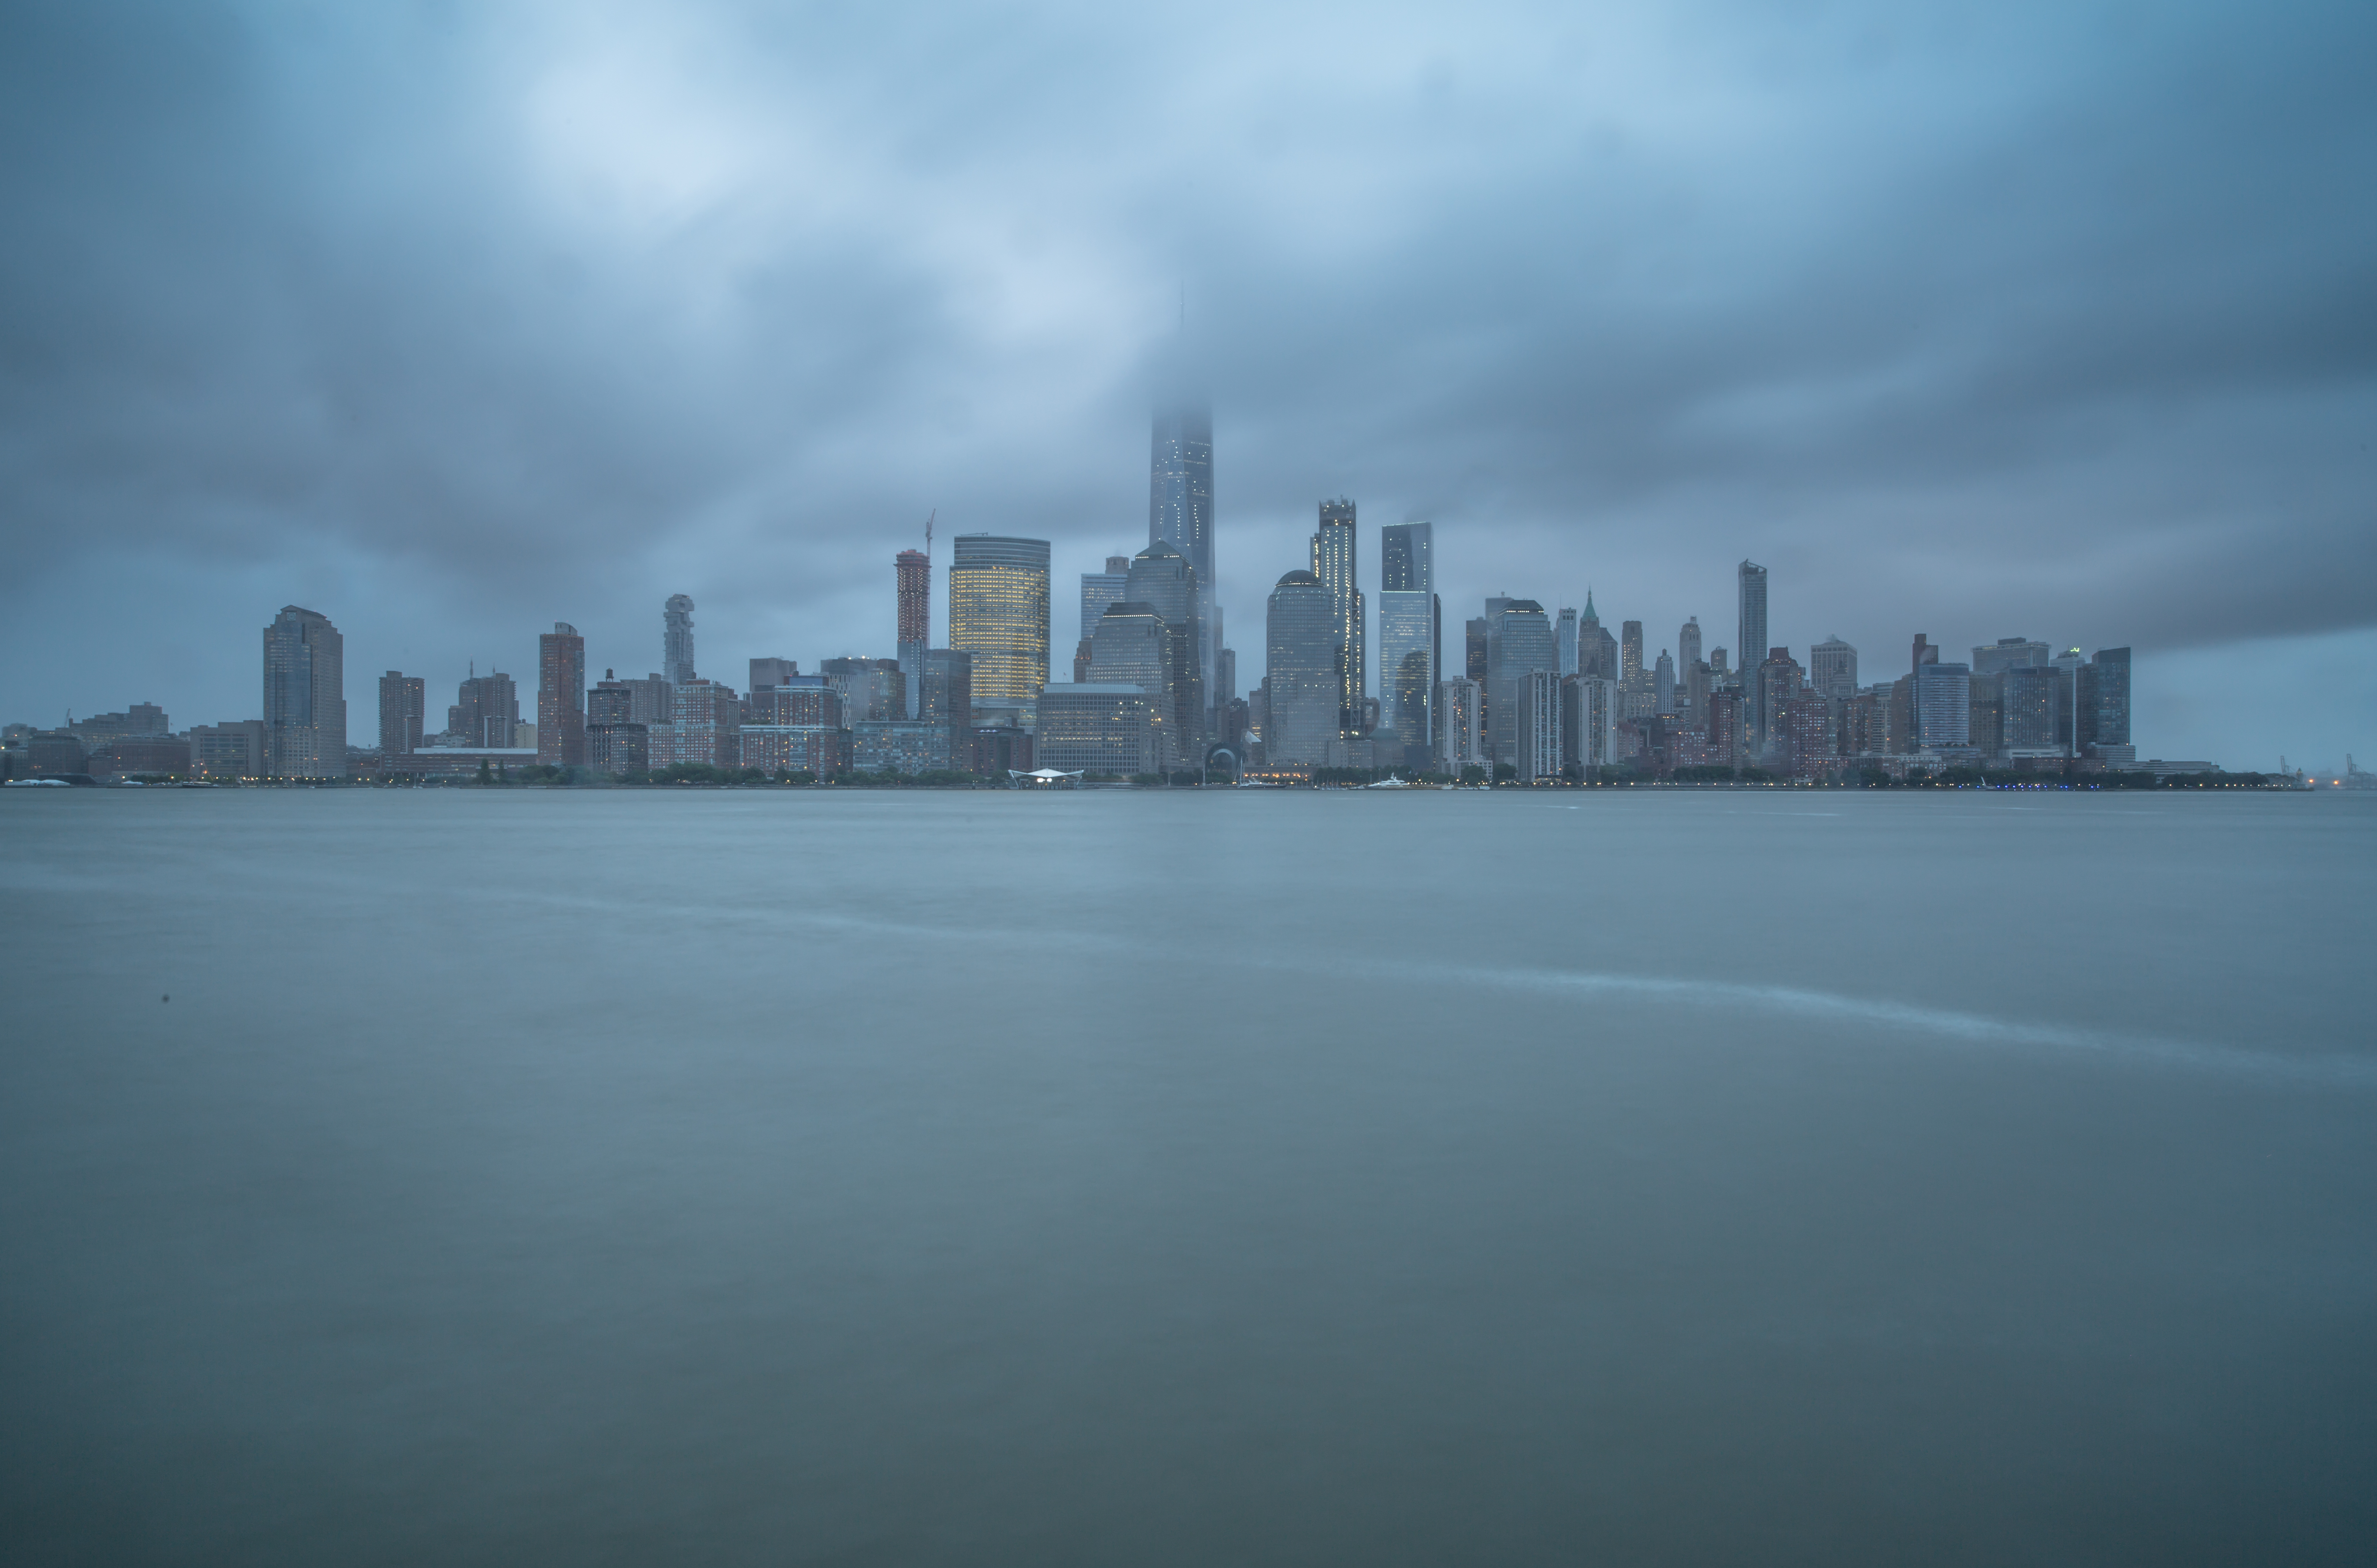 Downtown Manhattan view on a cloudy day example image 1